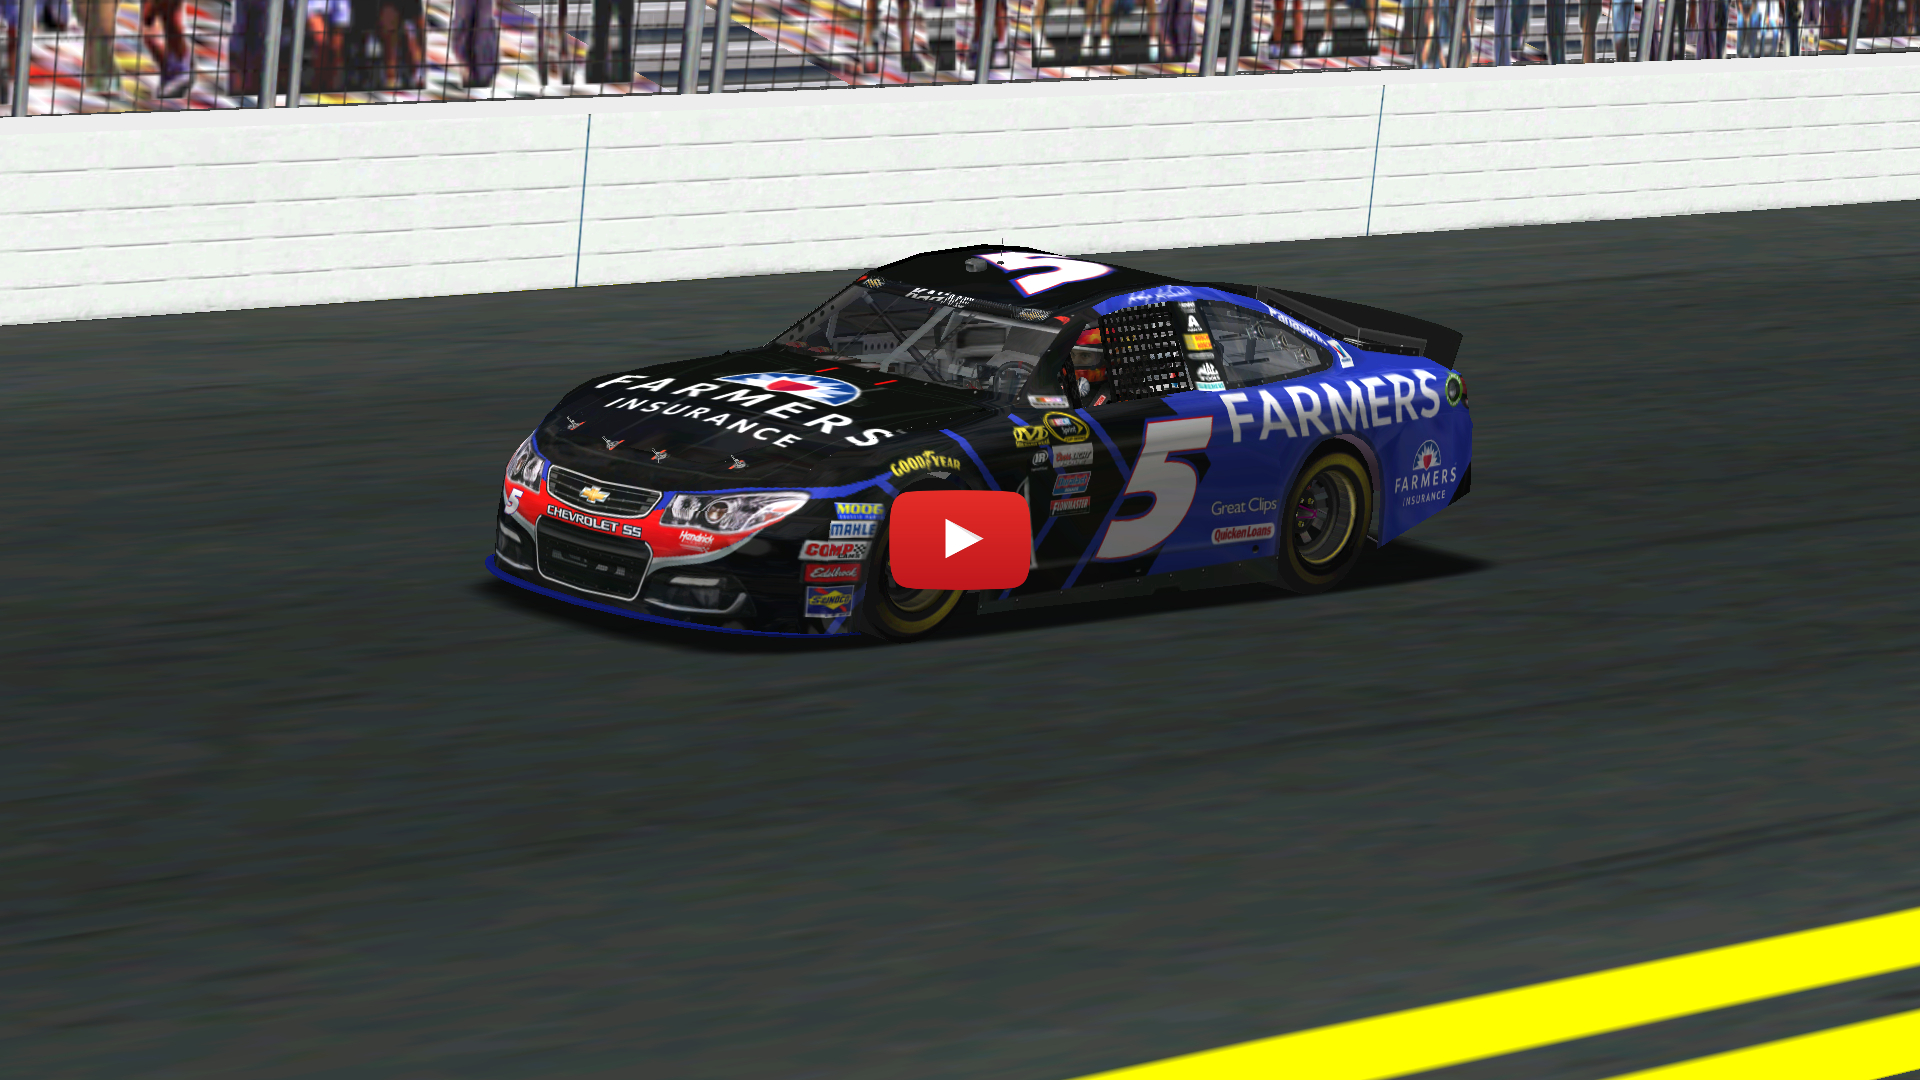 Race replay from the ARL Patch Cup Series Daytona 200 presented by Patch held on Saturday, February 25th 2017.